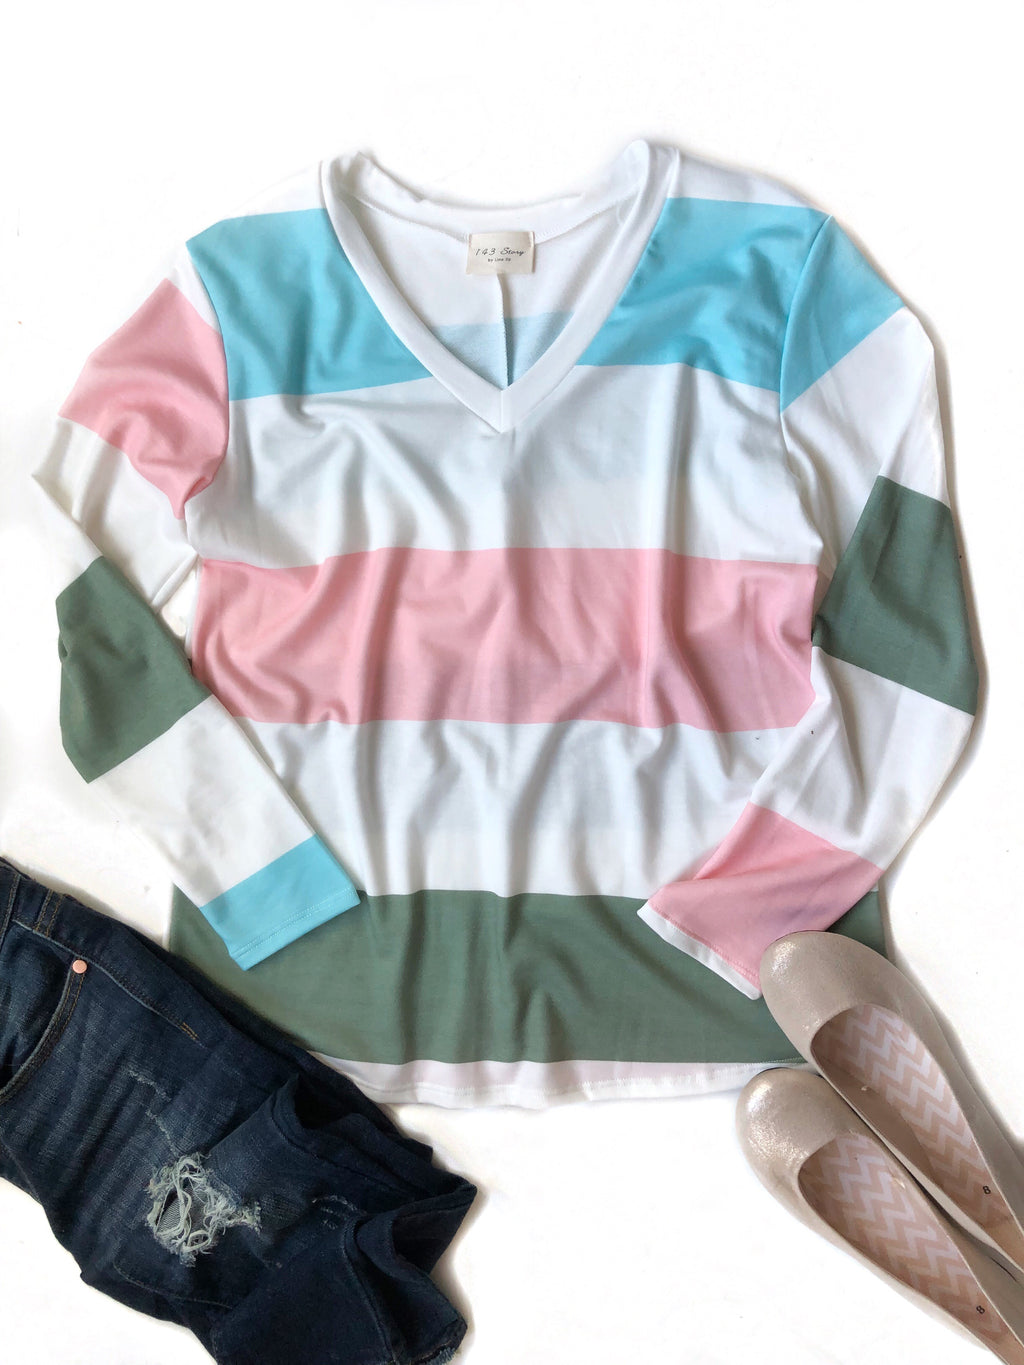 Thinking About It Striped Top in Blue, Pink, Green and White